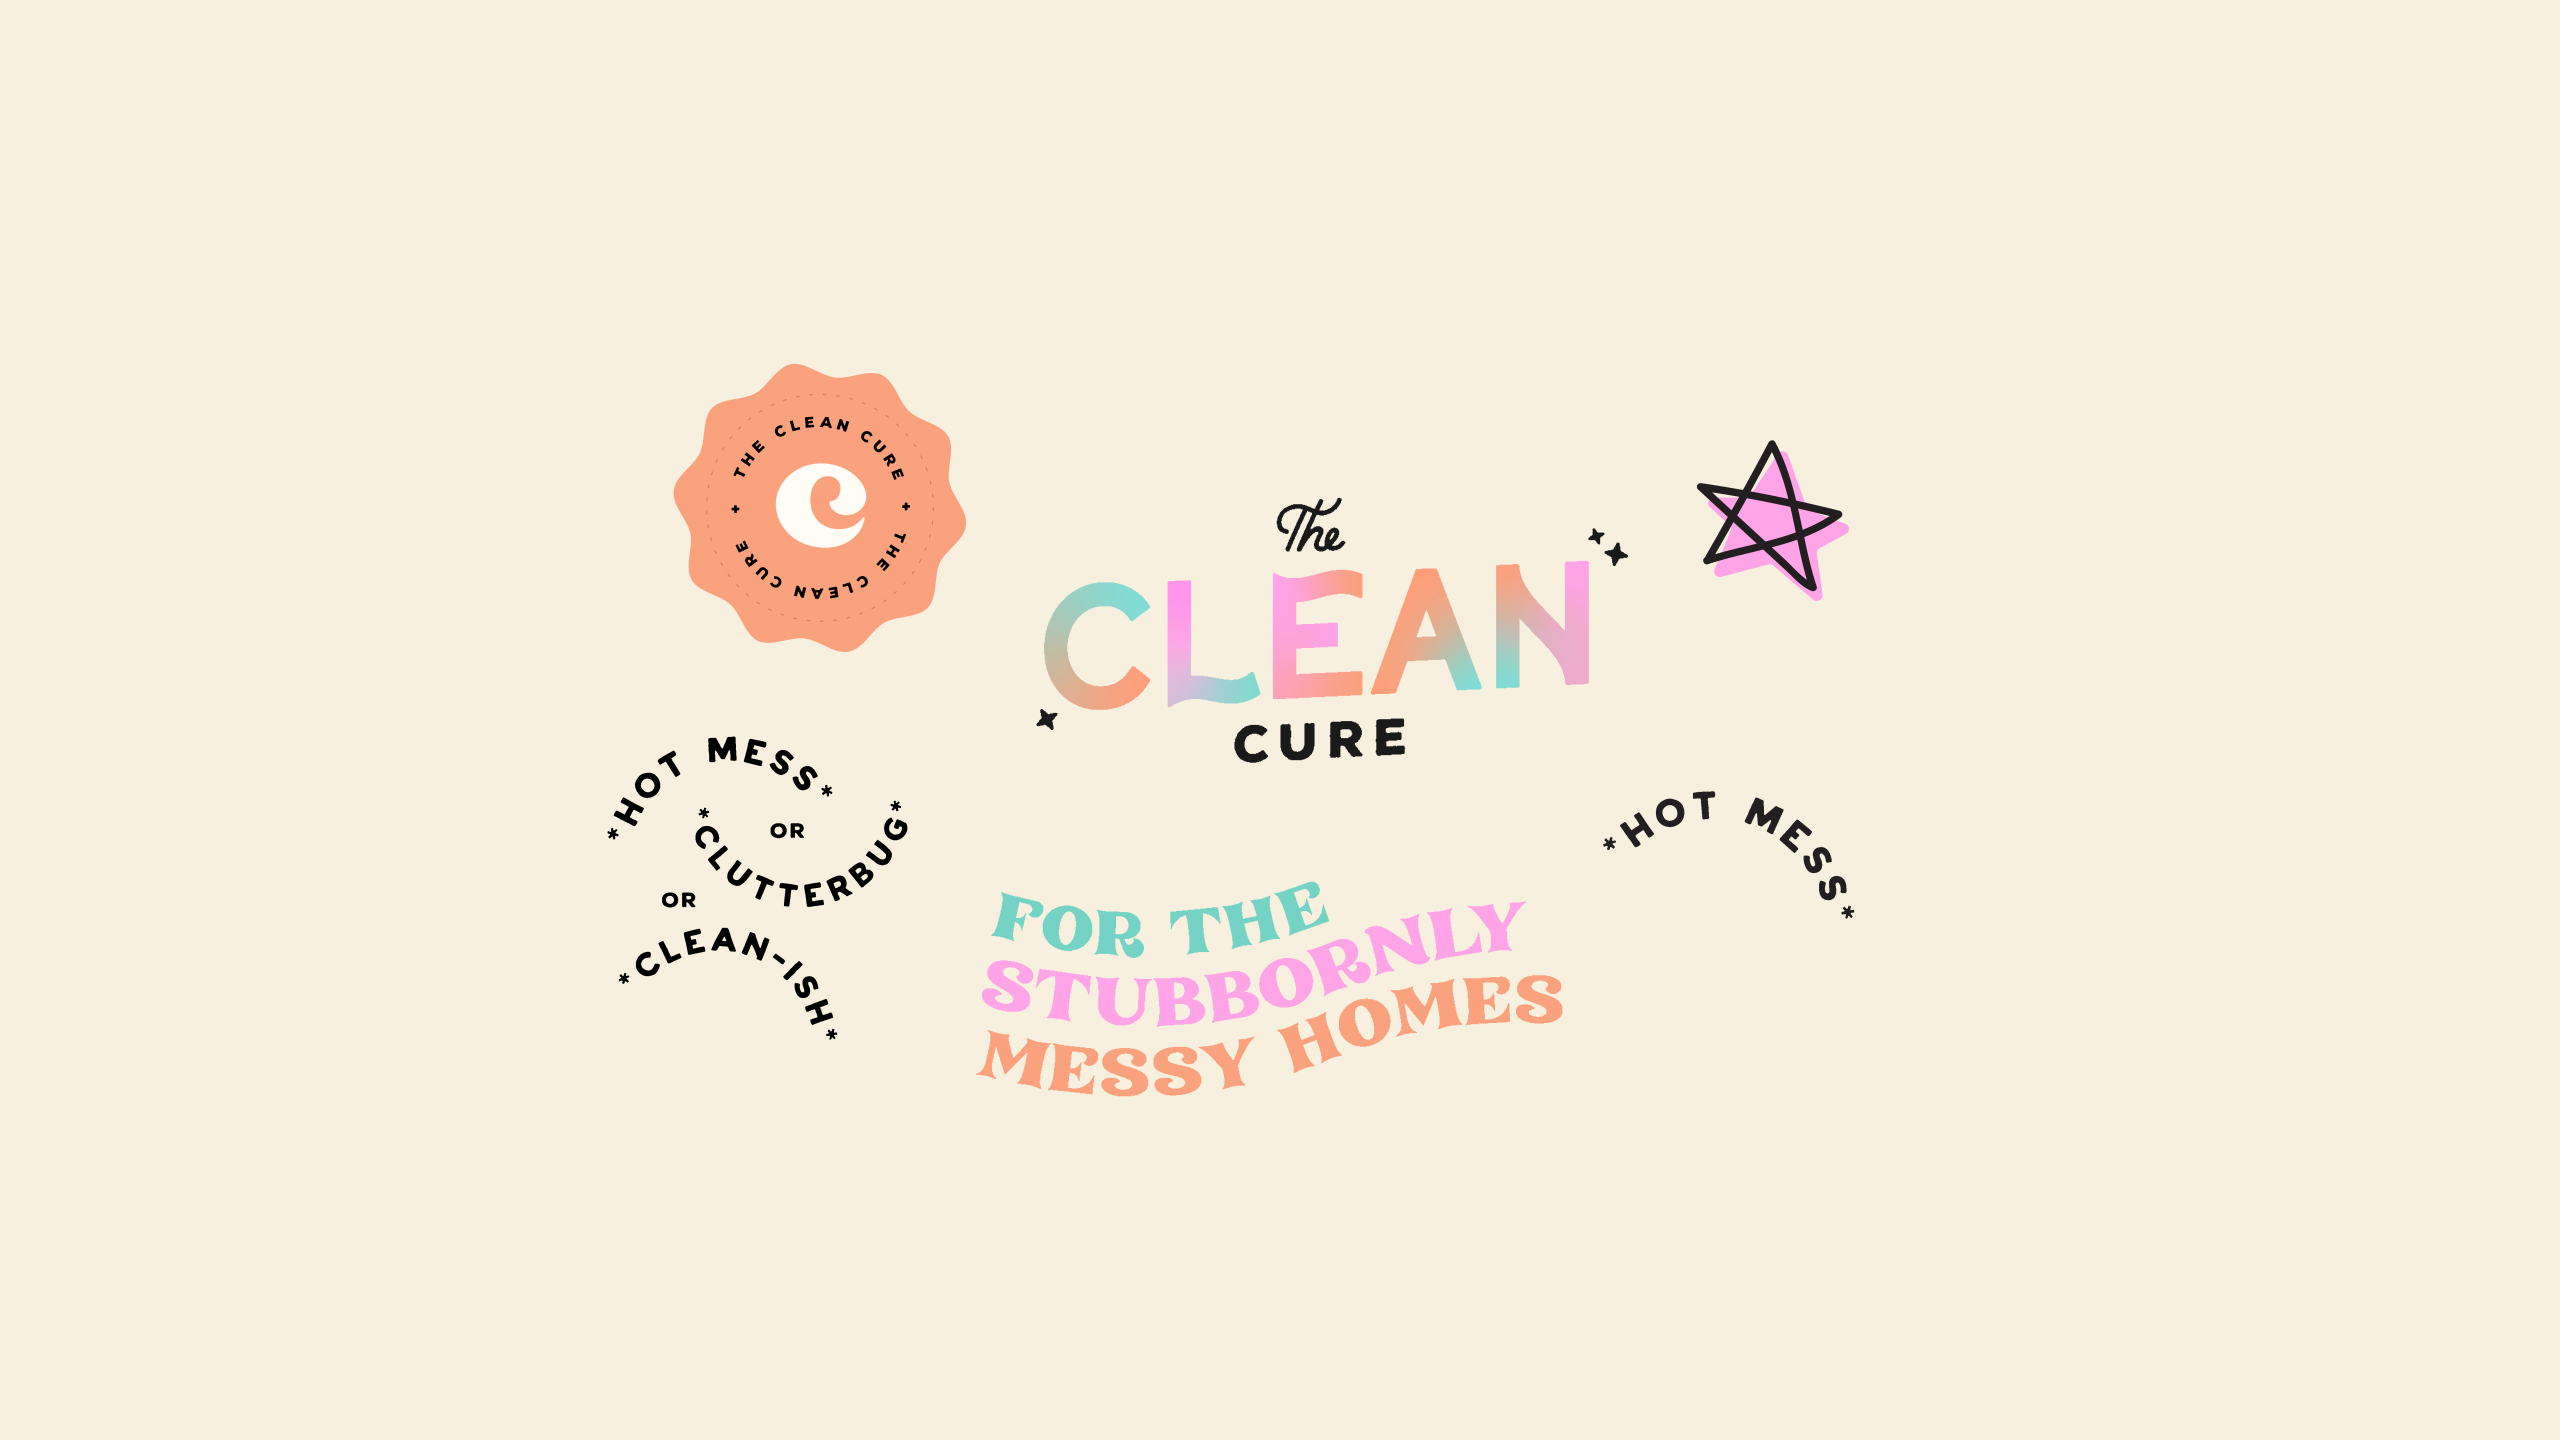 Animated sticker GIF design for The Clean Cure, helping you get organised by delving to the root of the problem - designed by Wiltshire-based graphic designer, Kaye Huett